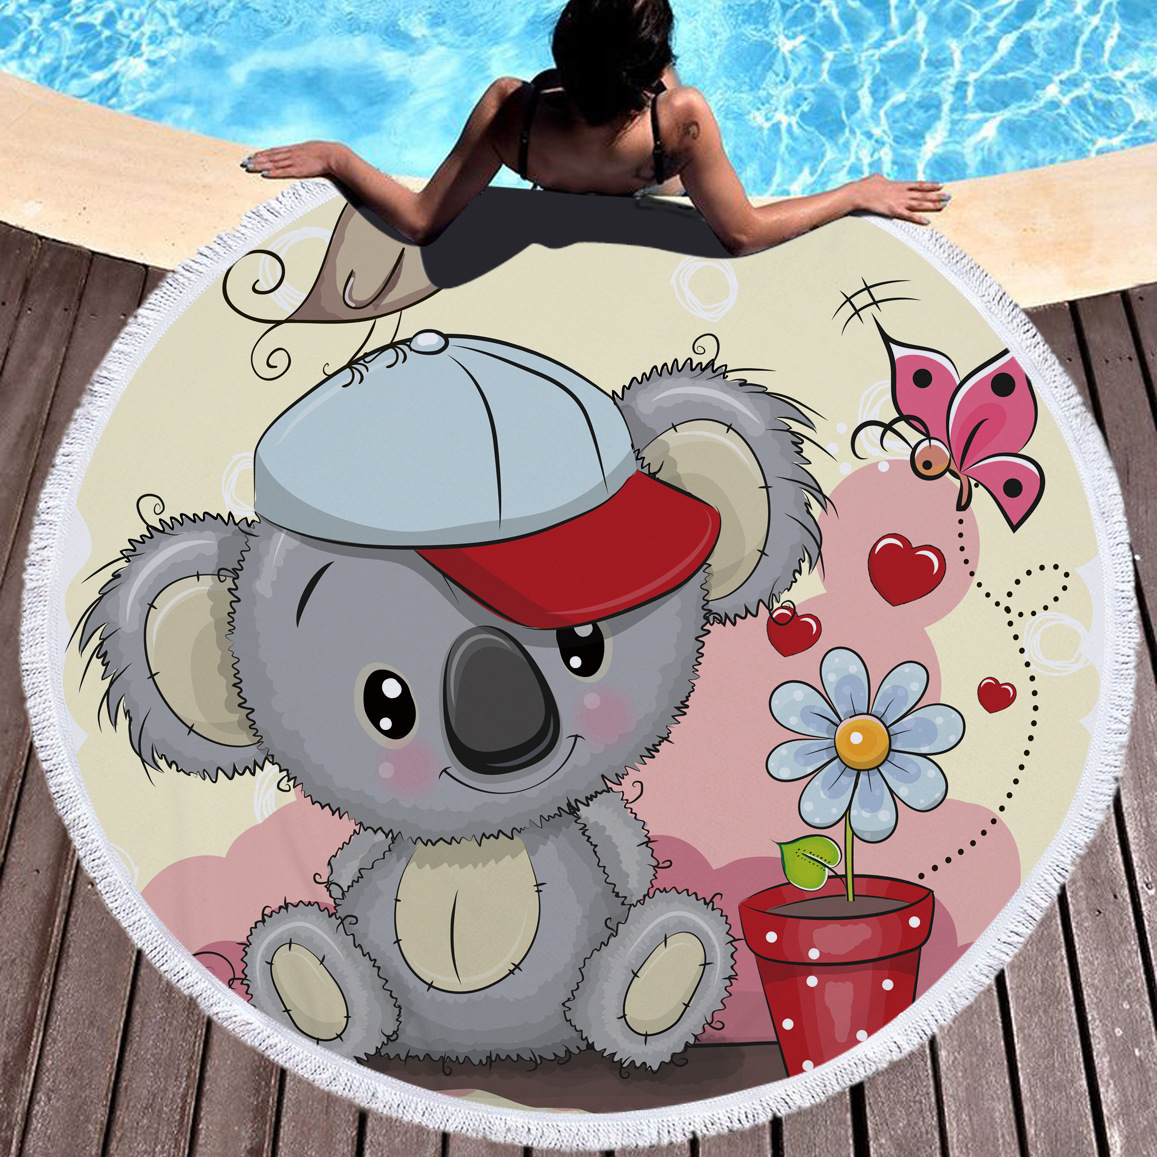 Cute Adorable Animal Koala Bear Round Towel Beach Microfiber Throw Bath Mat Towel Serviette De Plage Drap De Bain Toalla Redonda